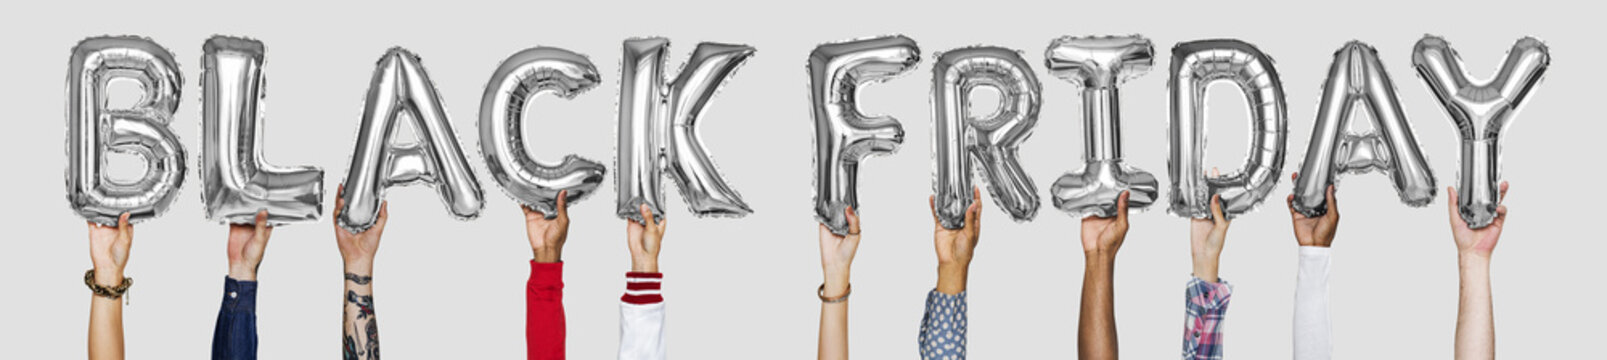 Silver gray alphabet balloons forming the word black friday